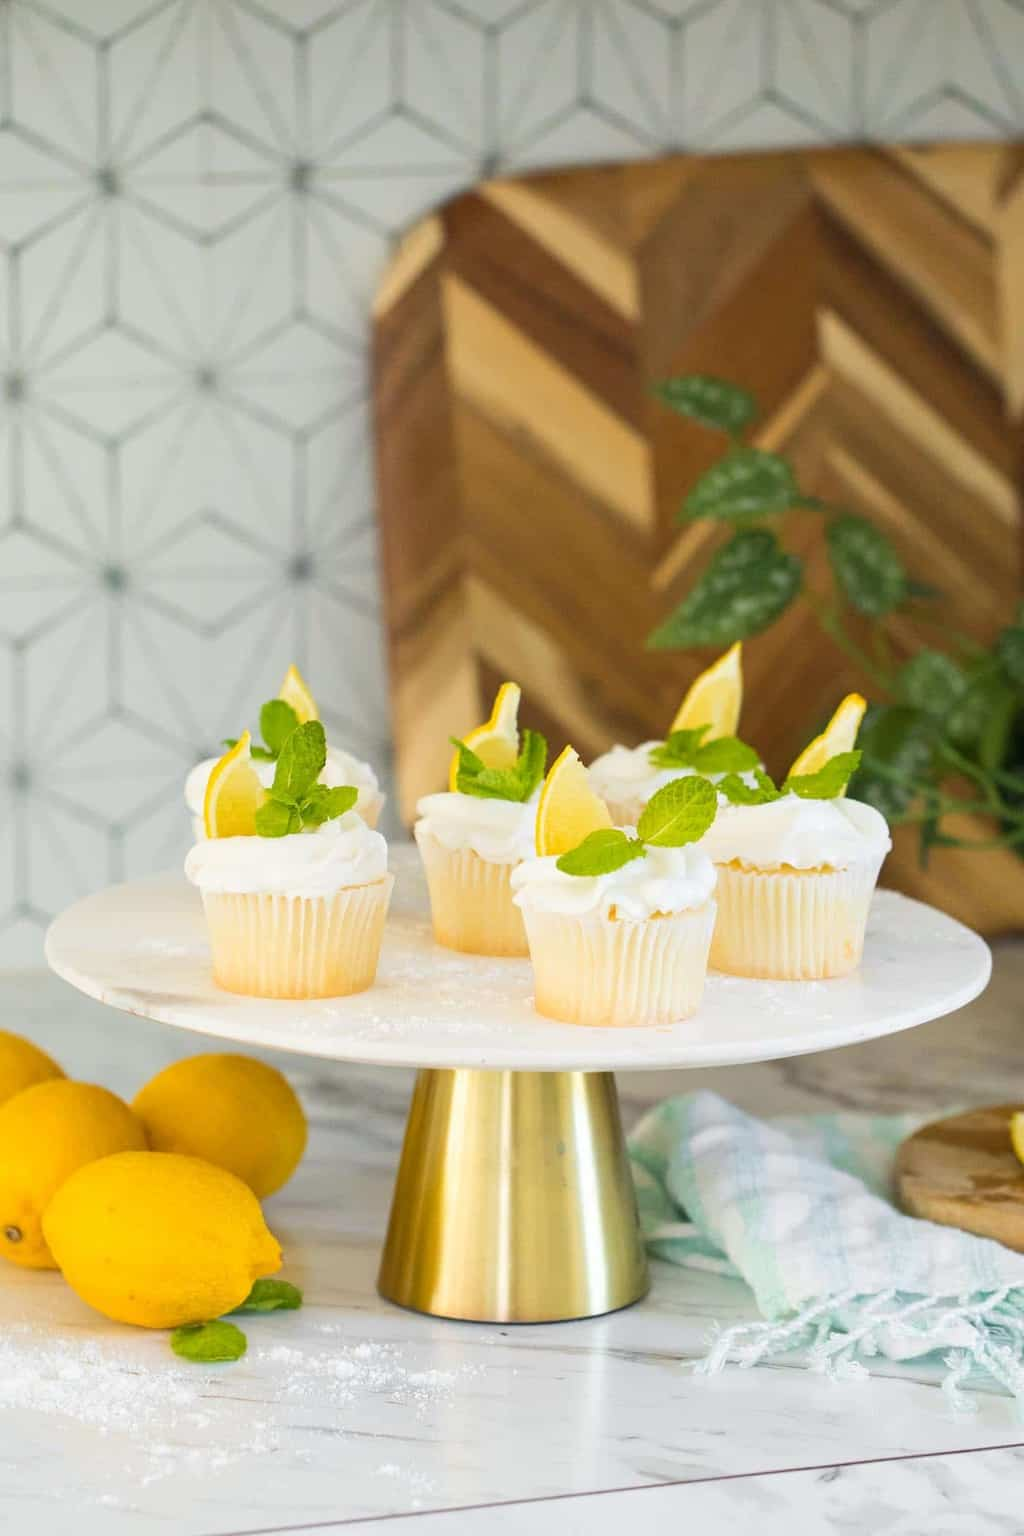 photo of how to make citrus flavorful cupcakes by top Houston lifestyle blogger Ashley Rose of Sugar & Cloth